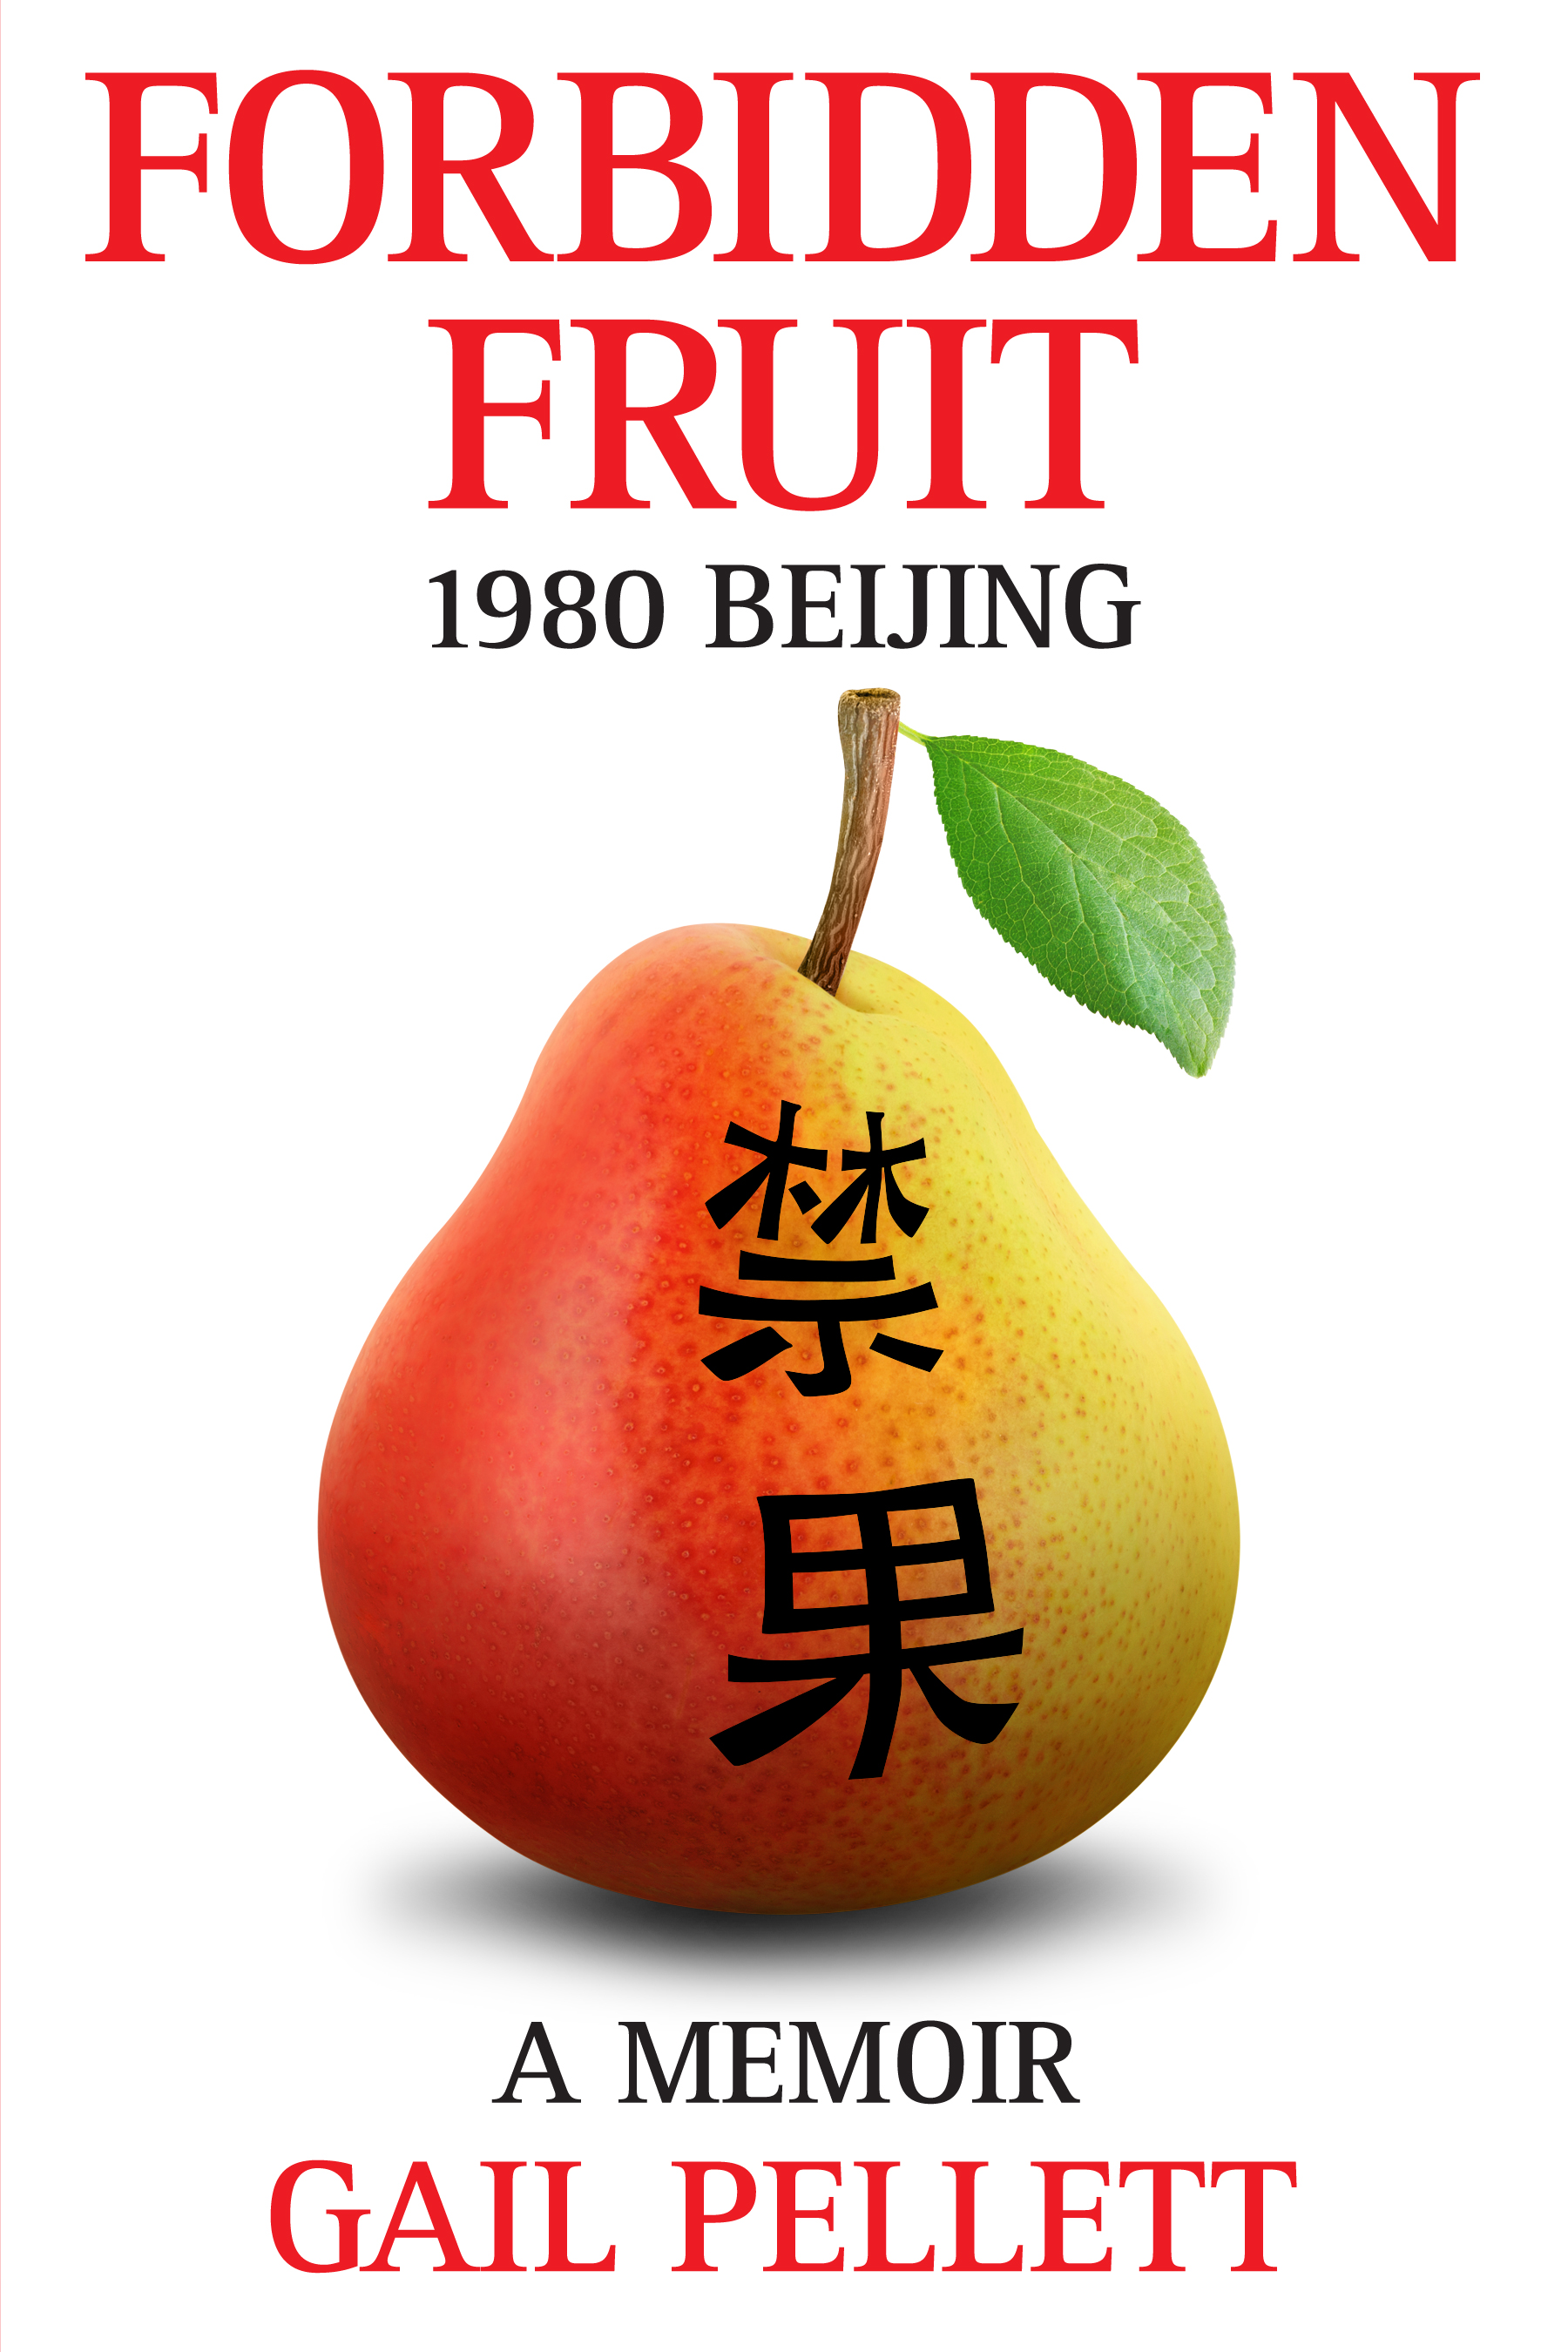 Book Launch: Forbidden Fruit 1980 Beijing by Gail Pellett